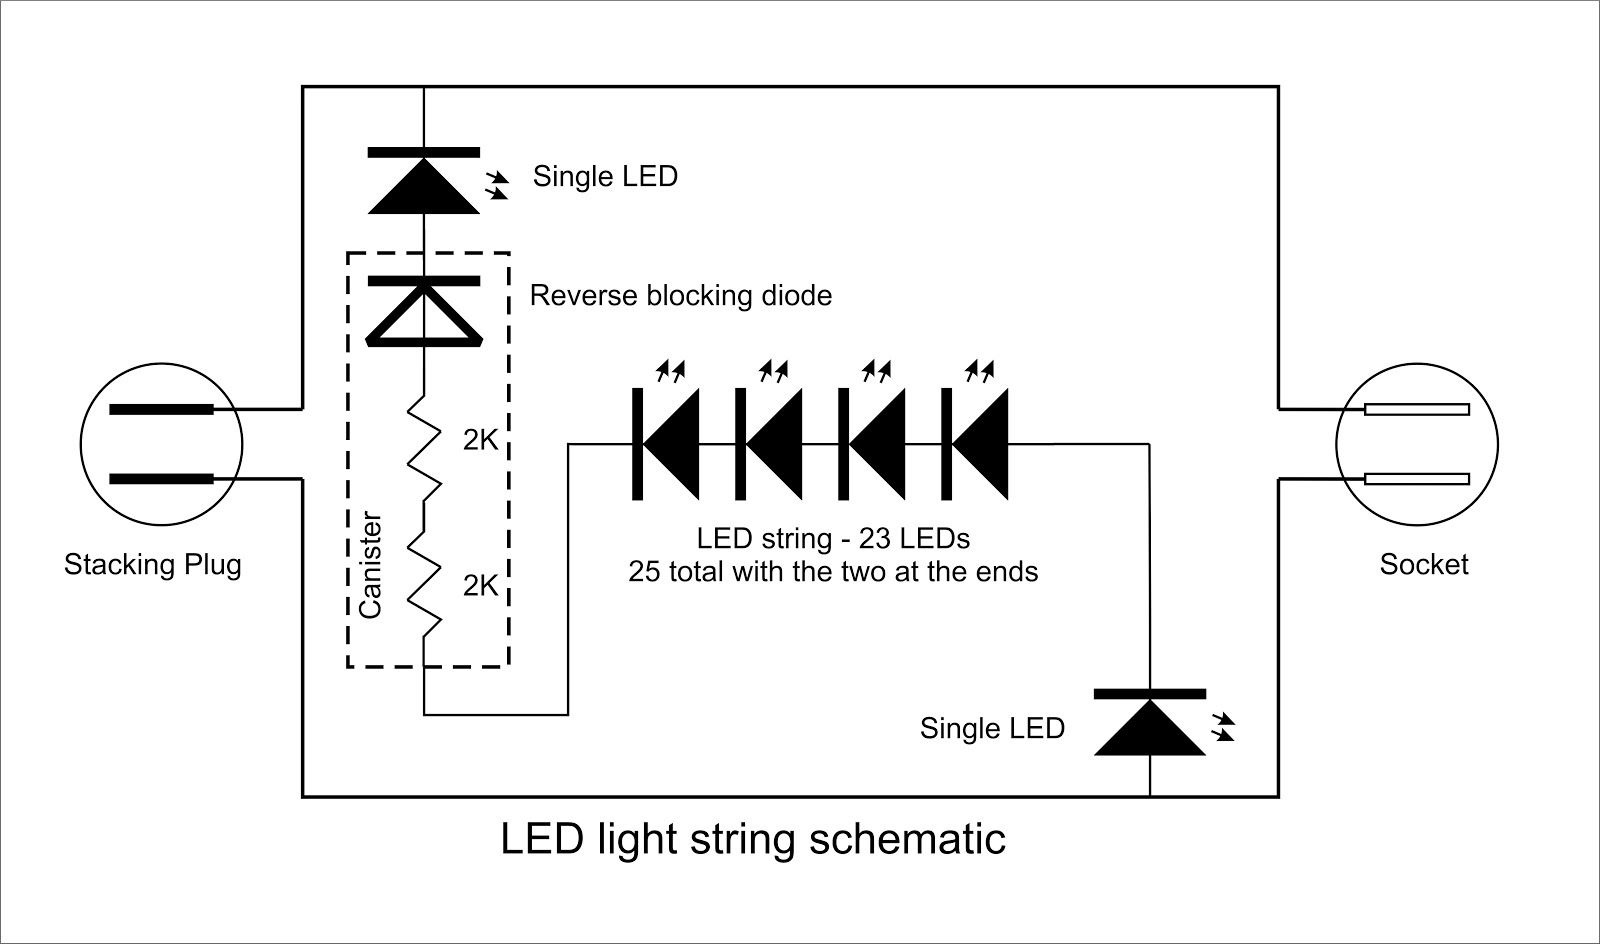 led light string schematic georgesworkshop fixing led string lights wiring diagram for led light string at creativeand.co